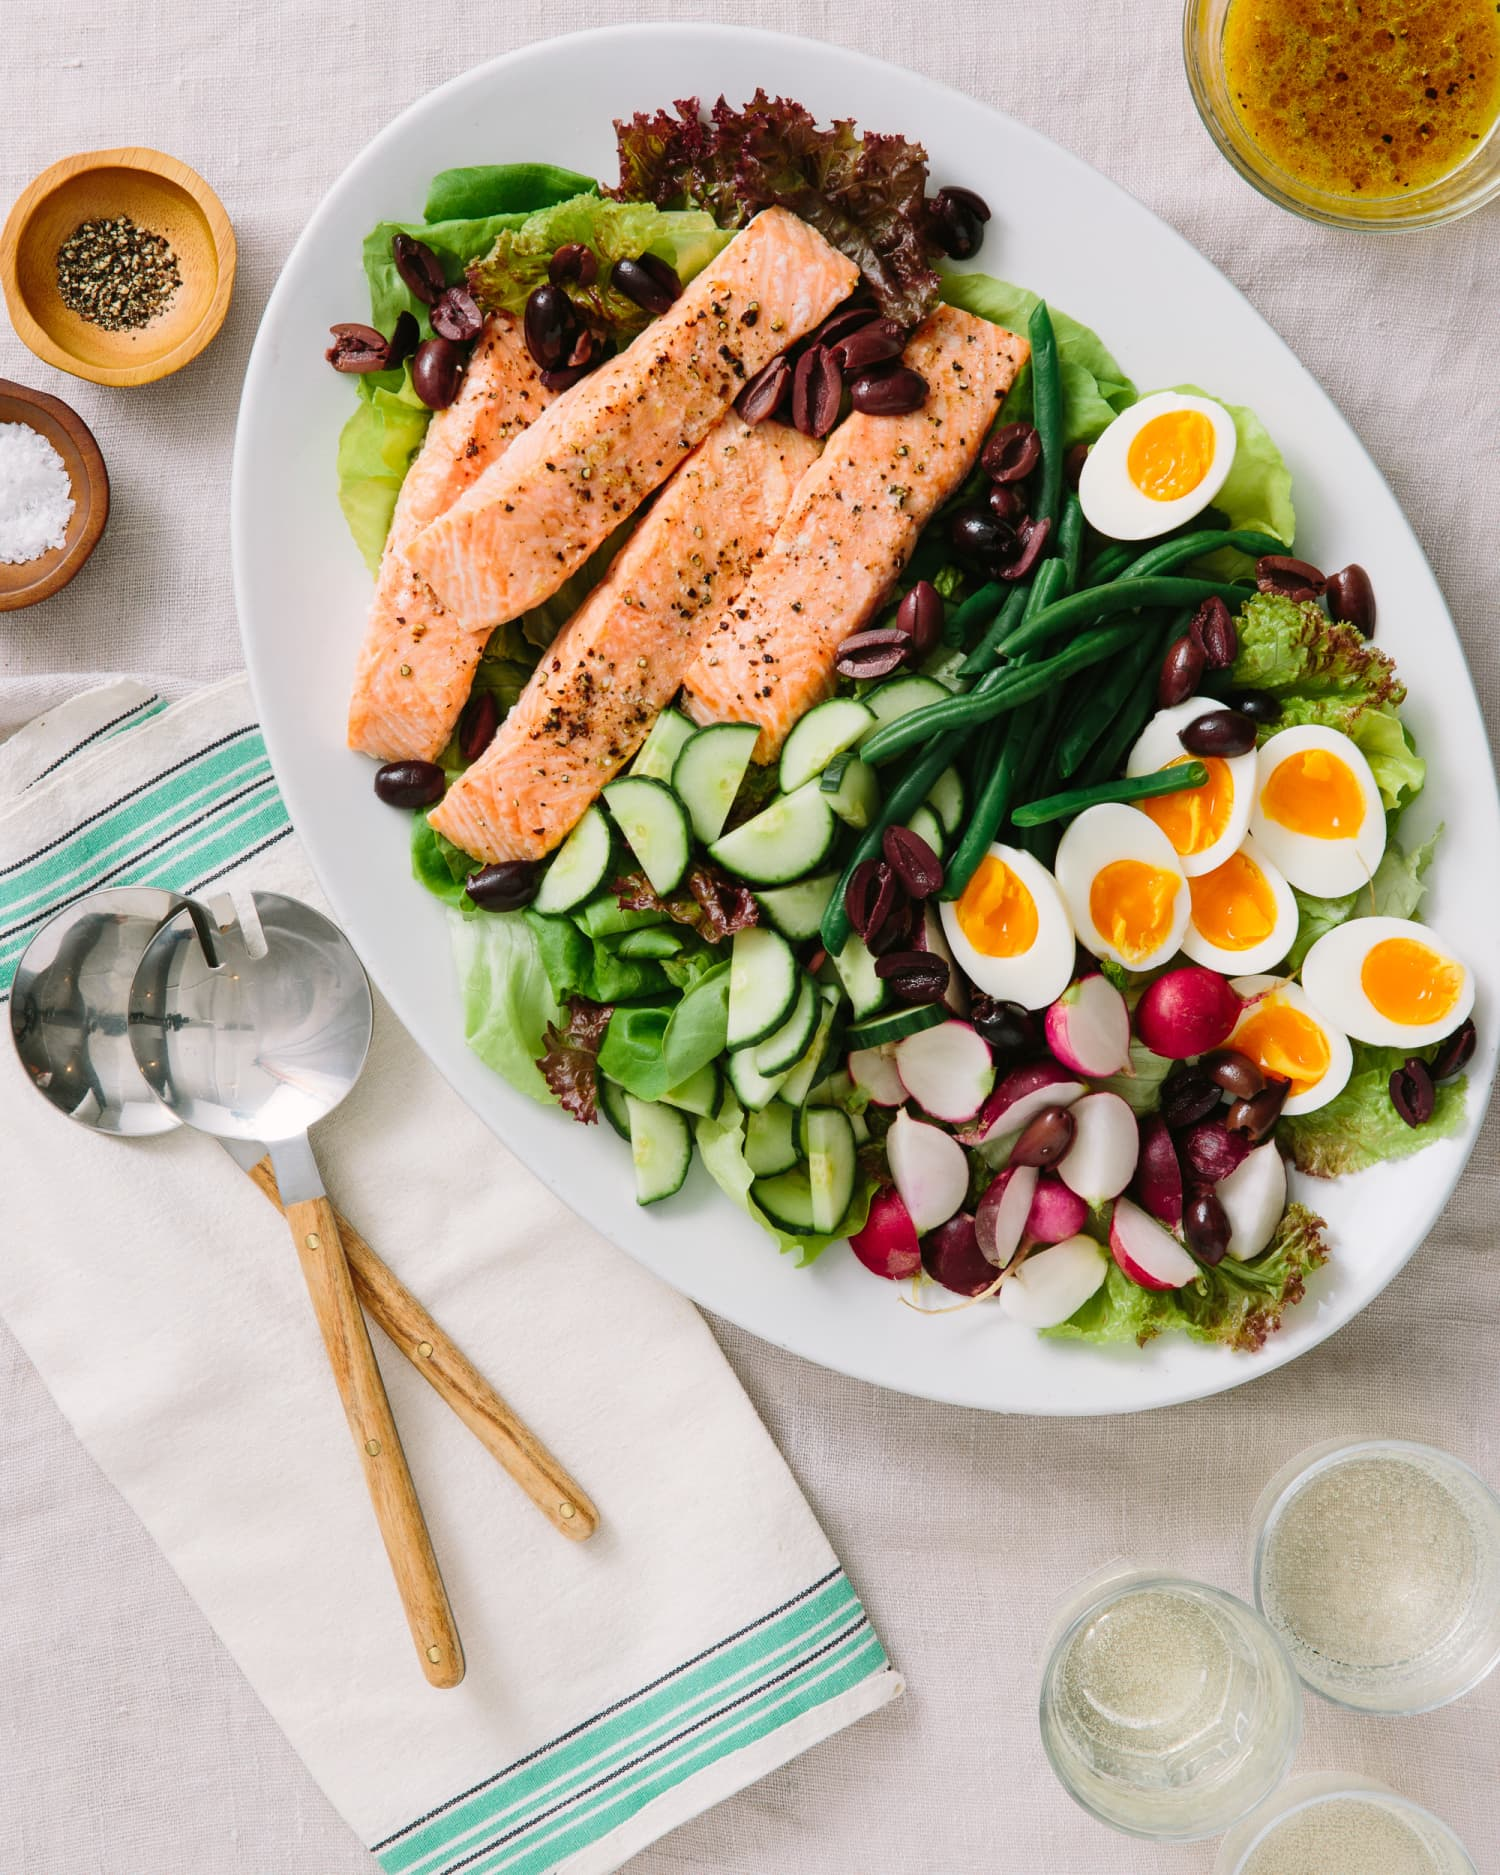 The 7 Foods You Eat Most on the Mediterranean Diet